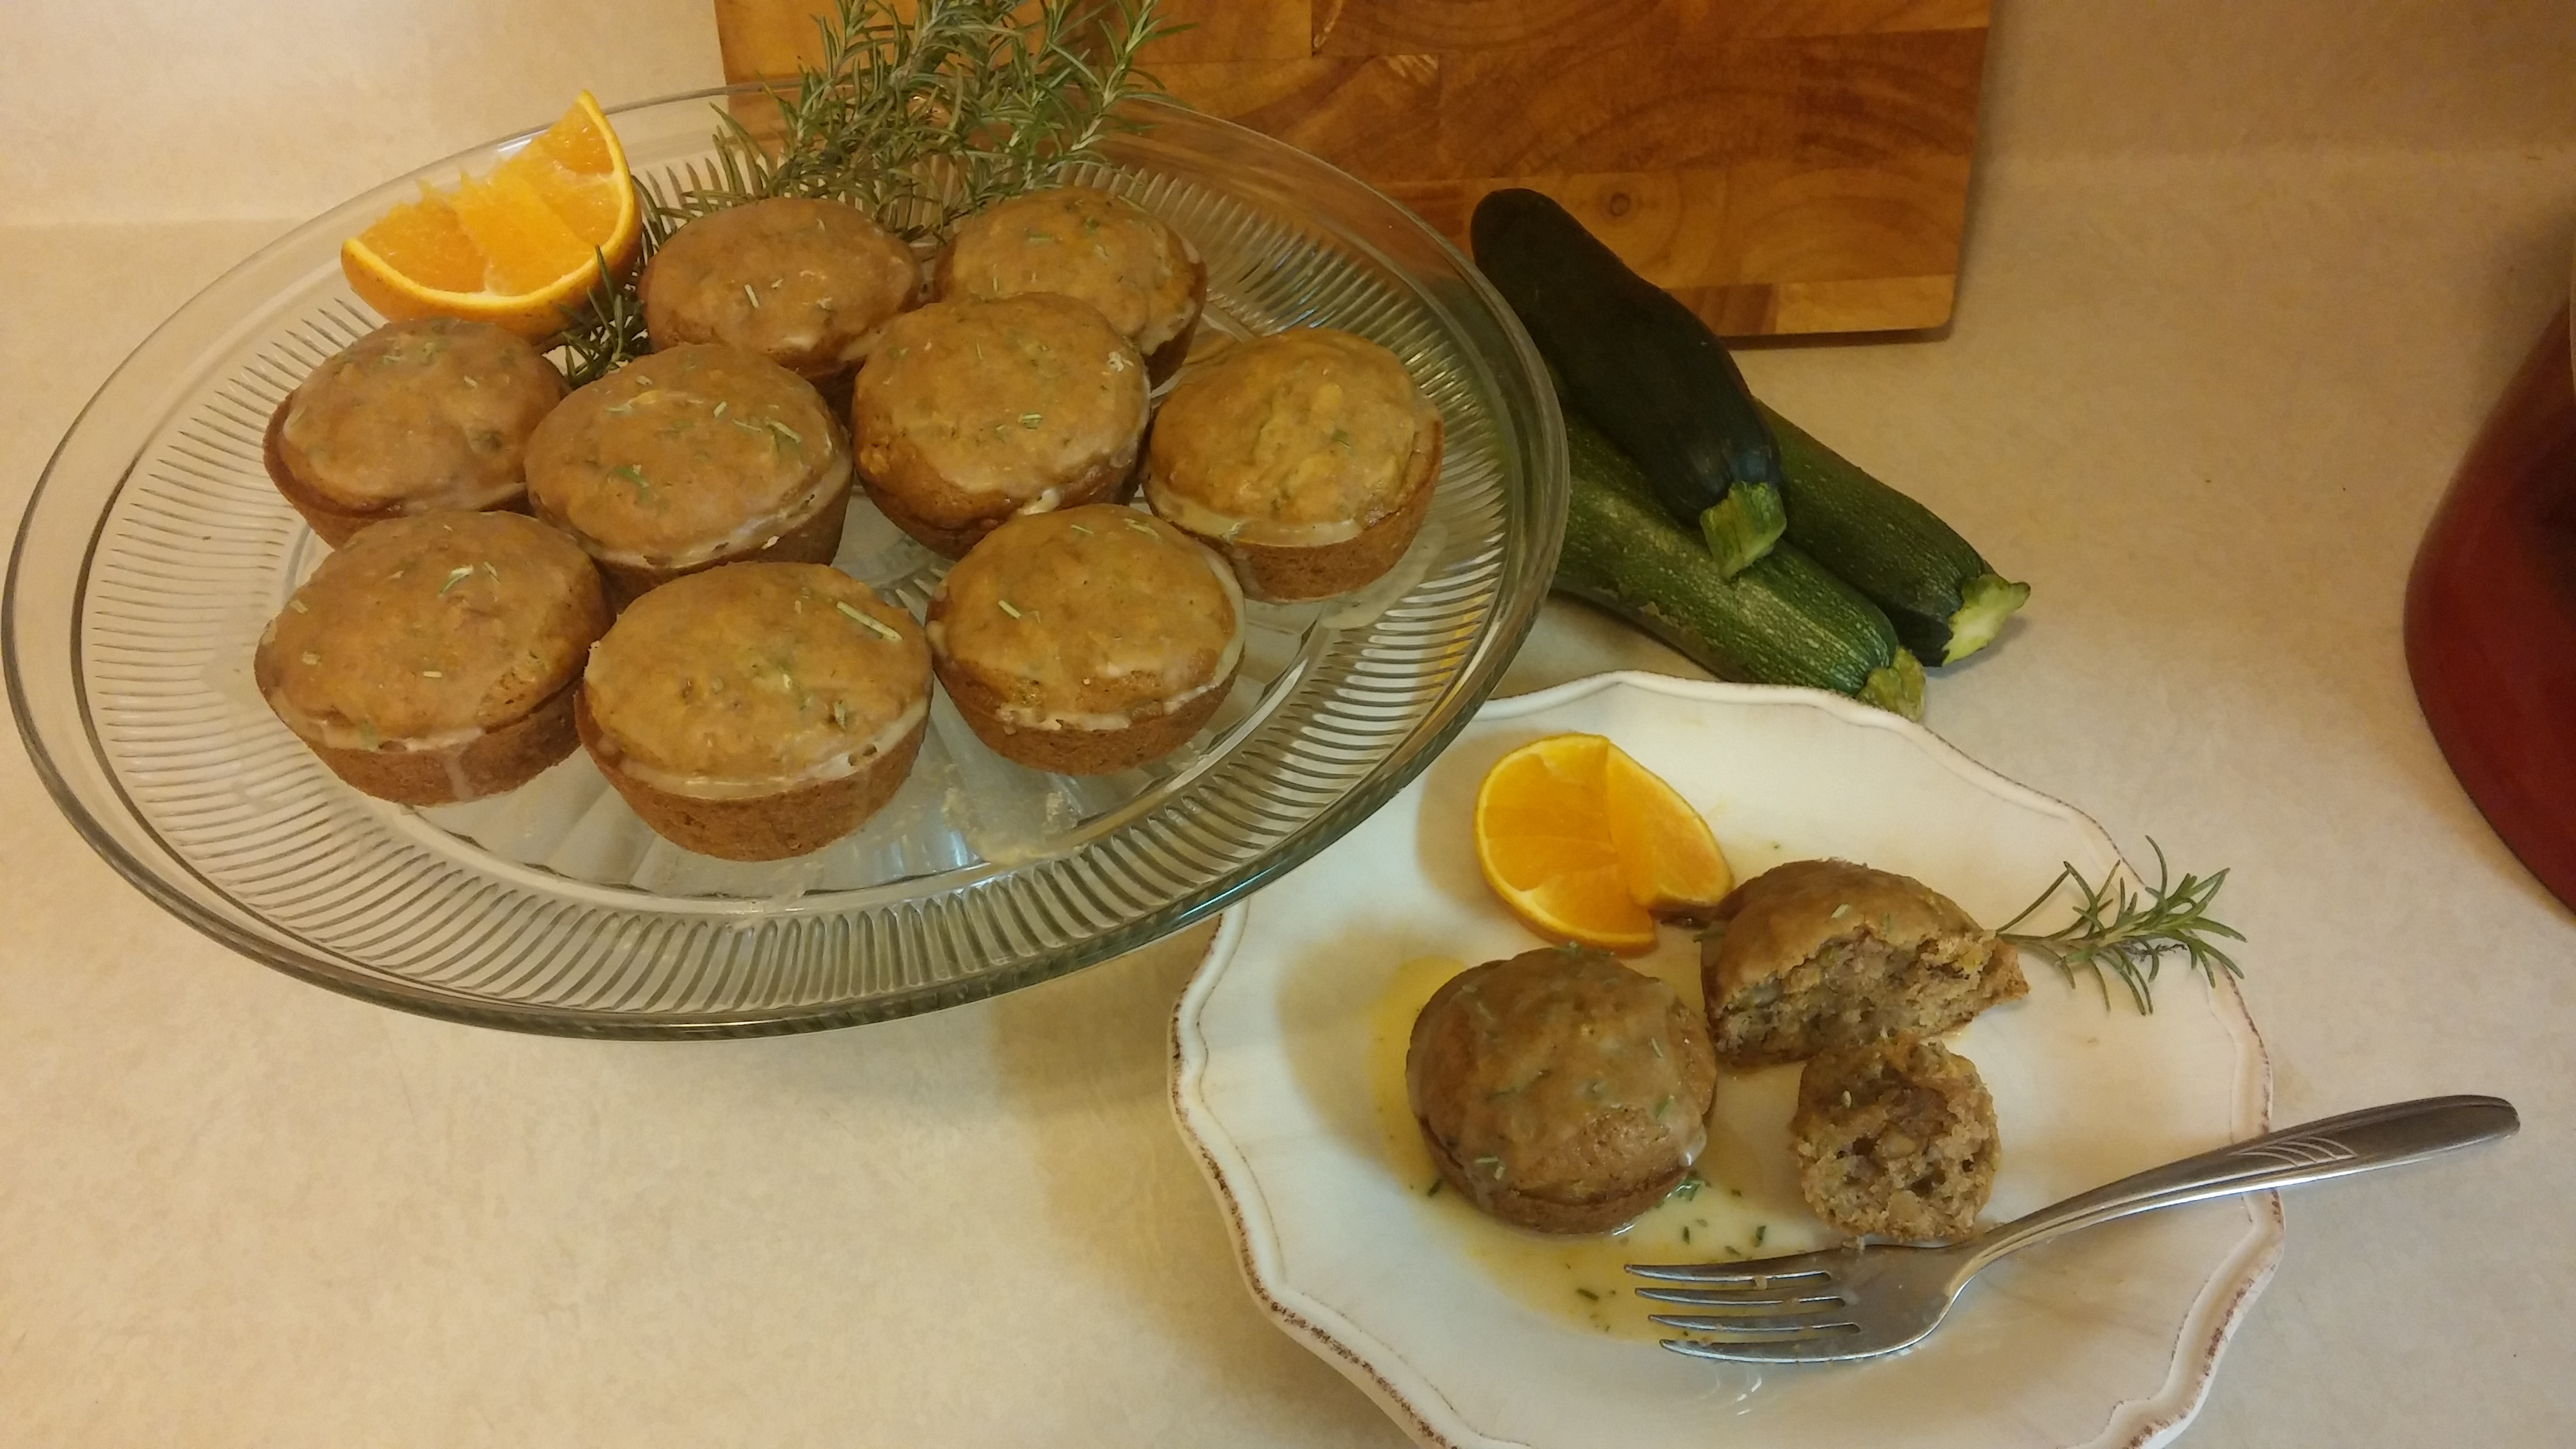 Zucchini Walnut Muffins with Citrus Rosemary Glaze